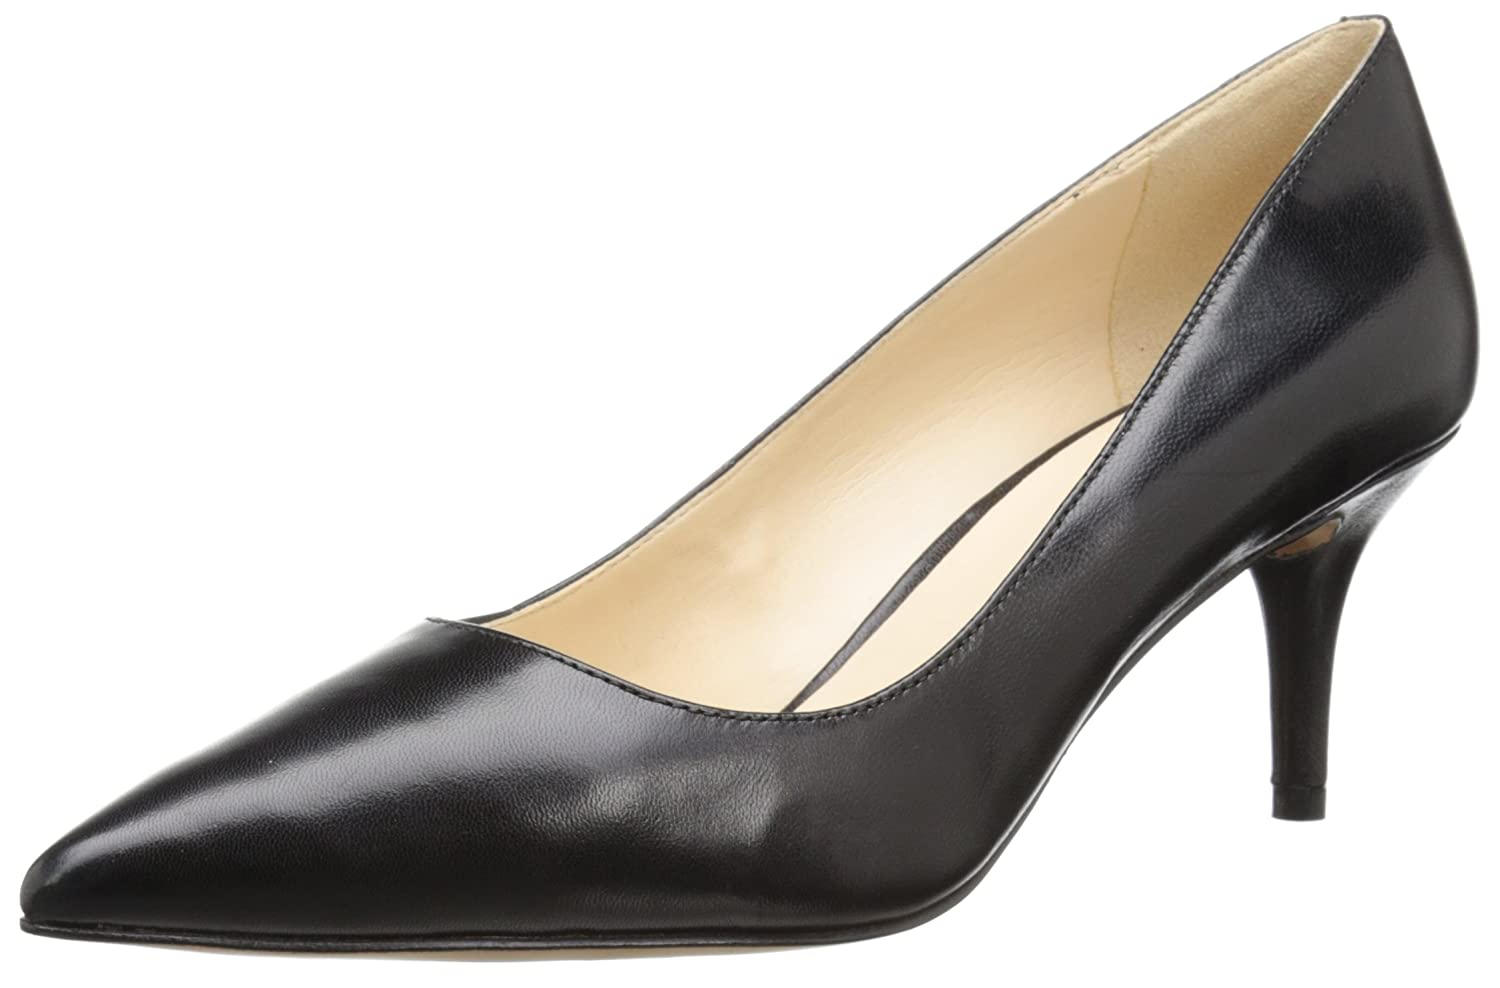 Nine West Women's Margot Leather Dress Pump B00XDHCBHC 10 W US|Black Leather